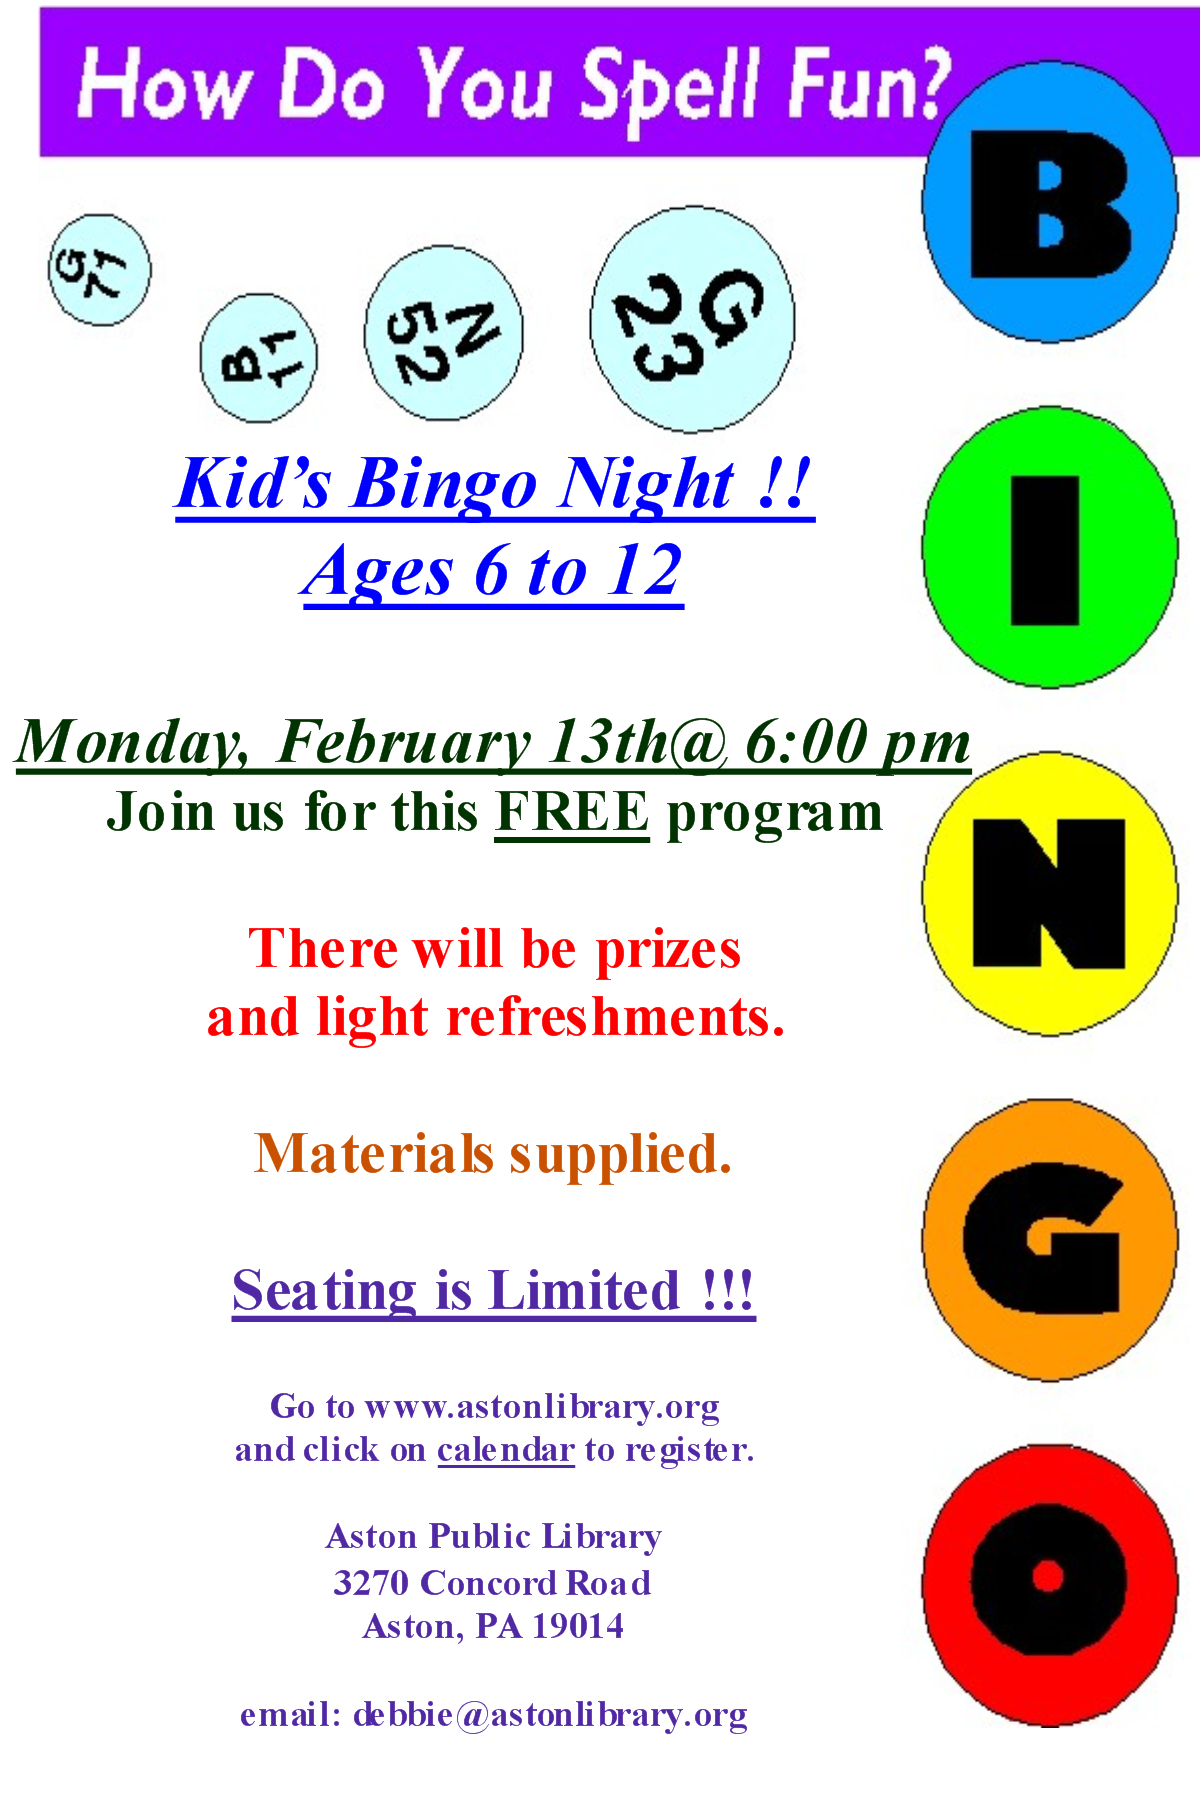 kids u2019 bingo night coming up